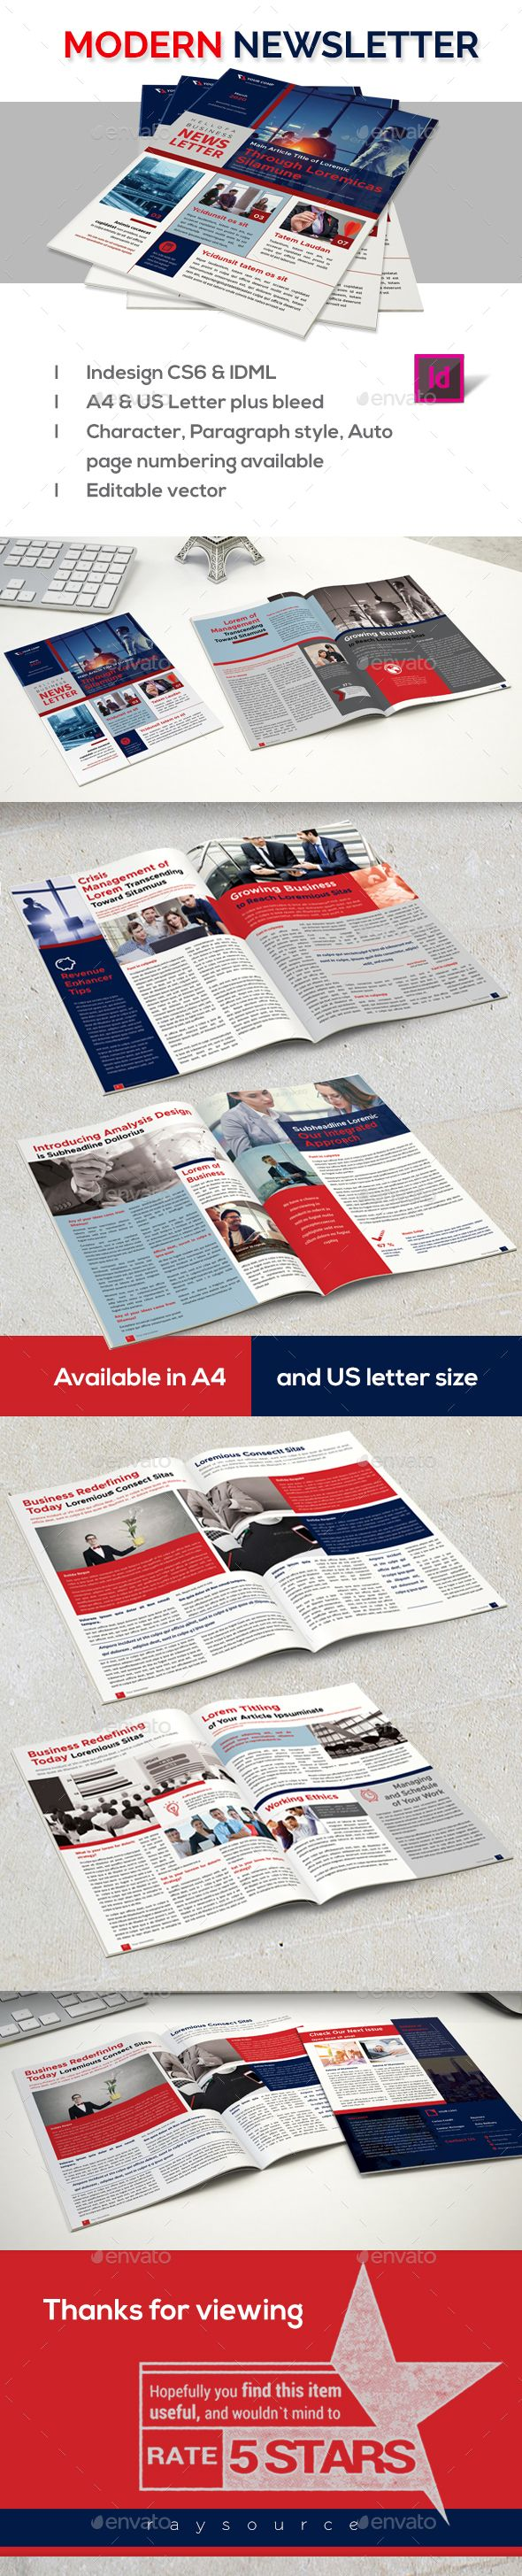 Modern Newsletter Newsletters Print Templates Download